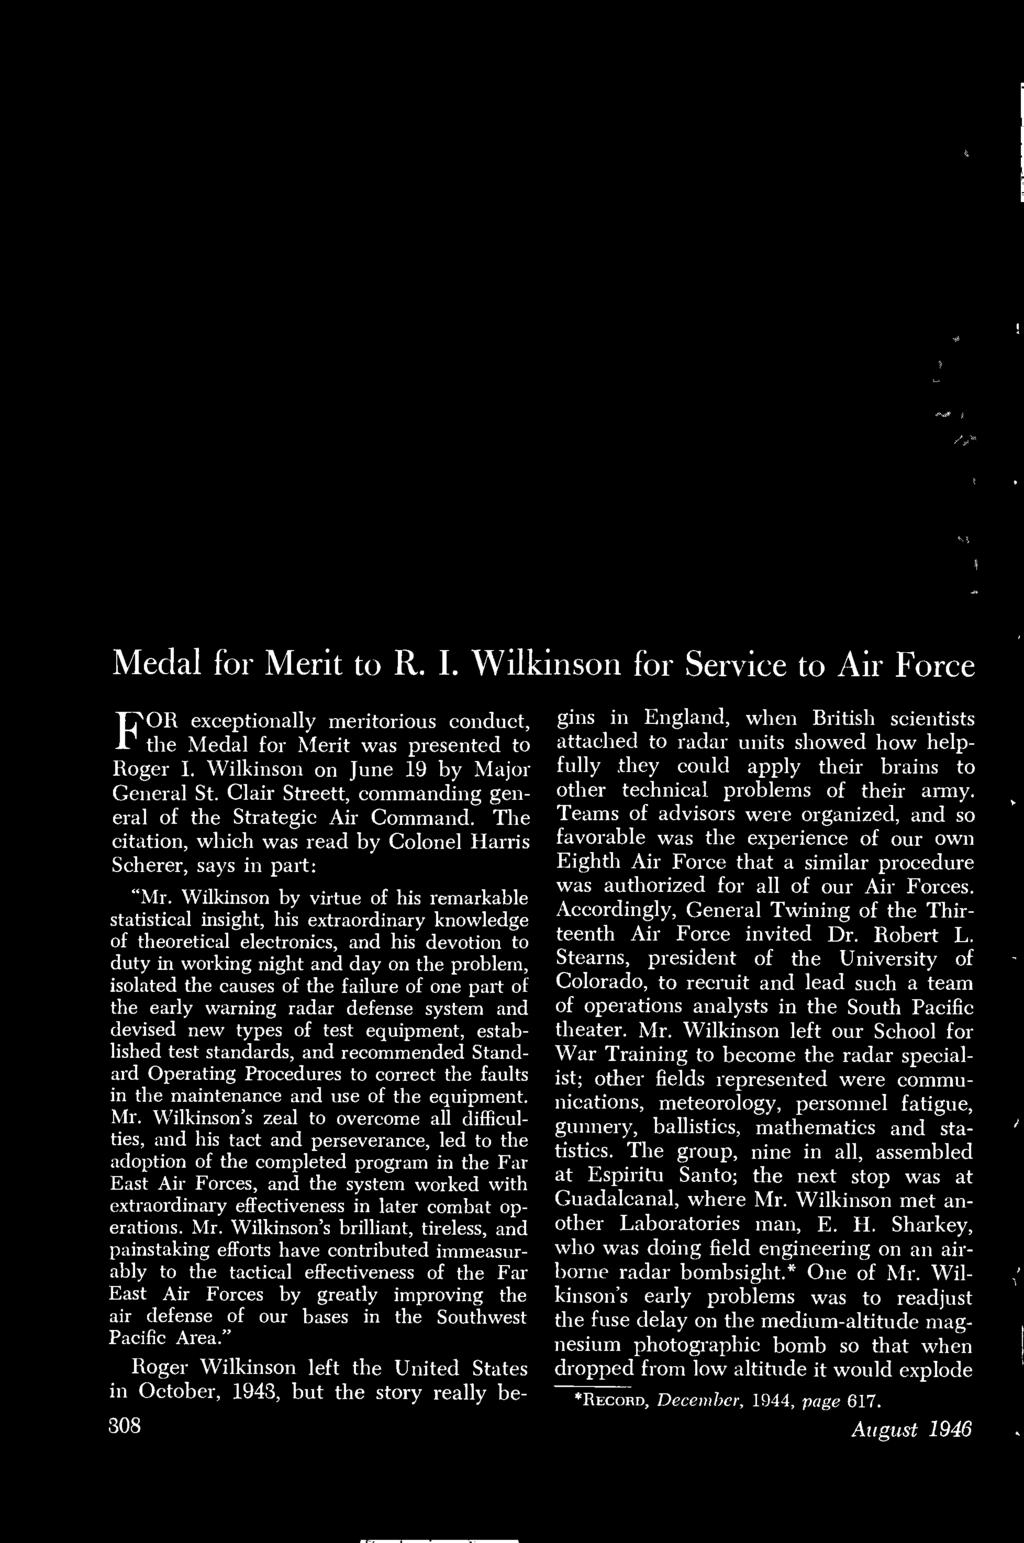 Wilkinson by virtue of his remarkable statistical insight, his extraordinary knowledge of theoretical electronics, and his devotion to duty in working night and day on the problem, isolated the